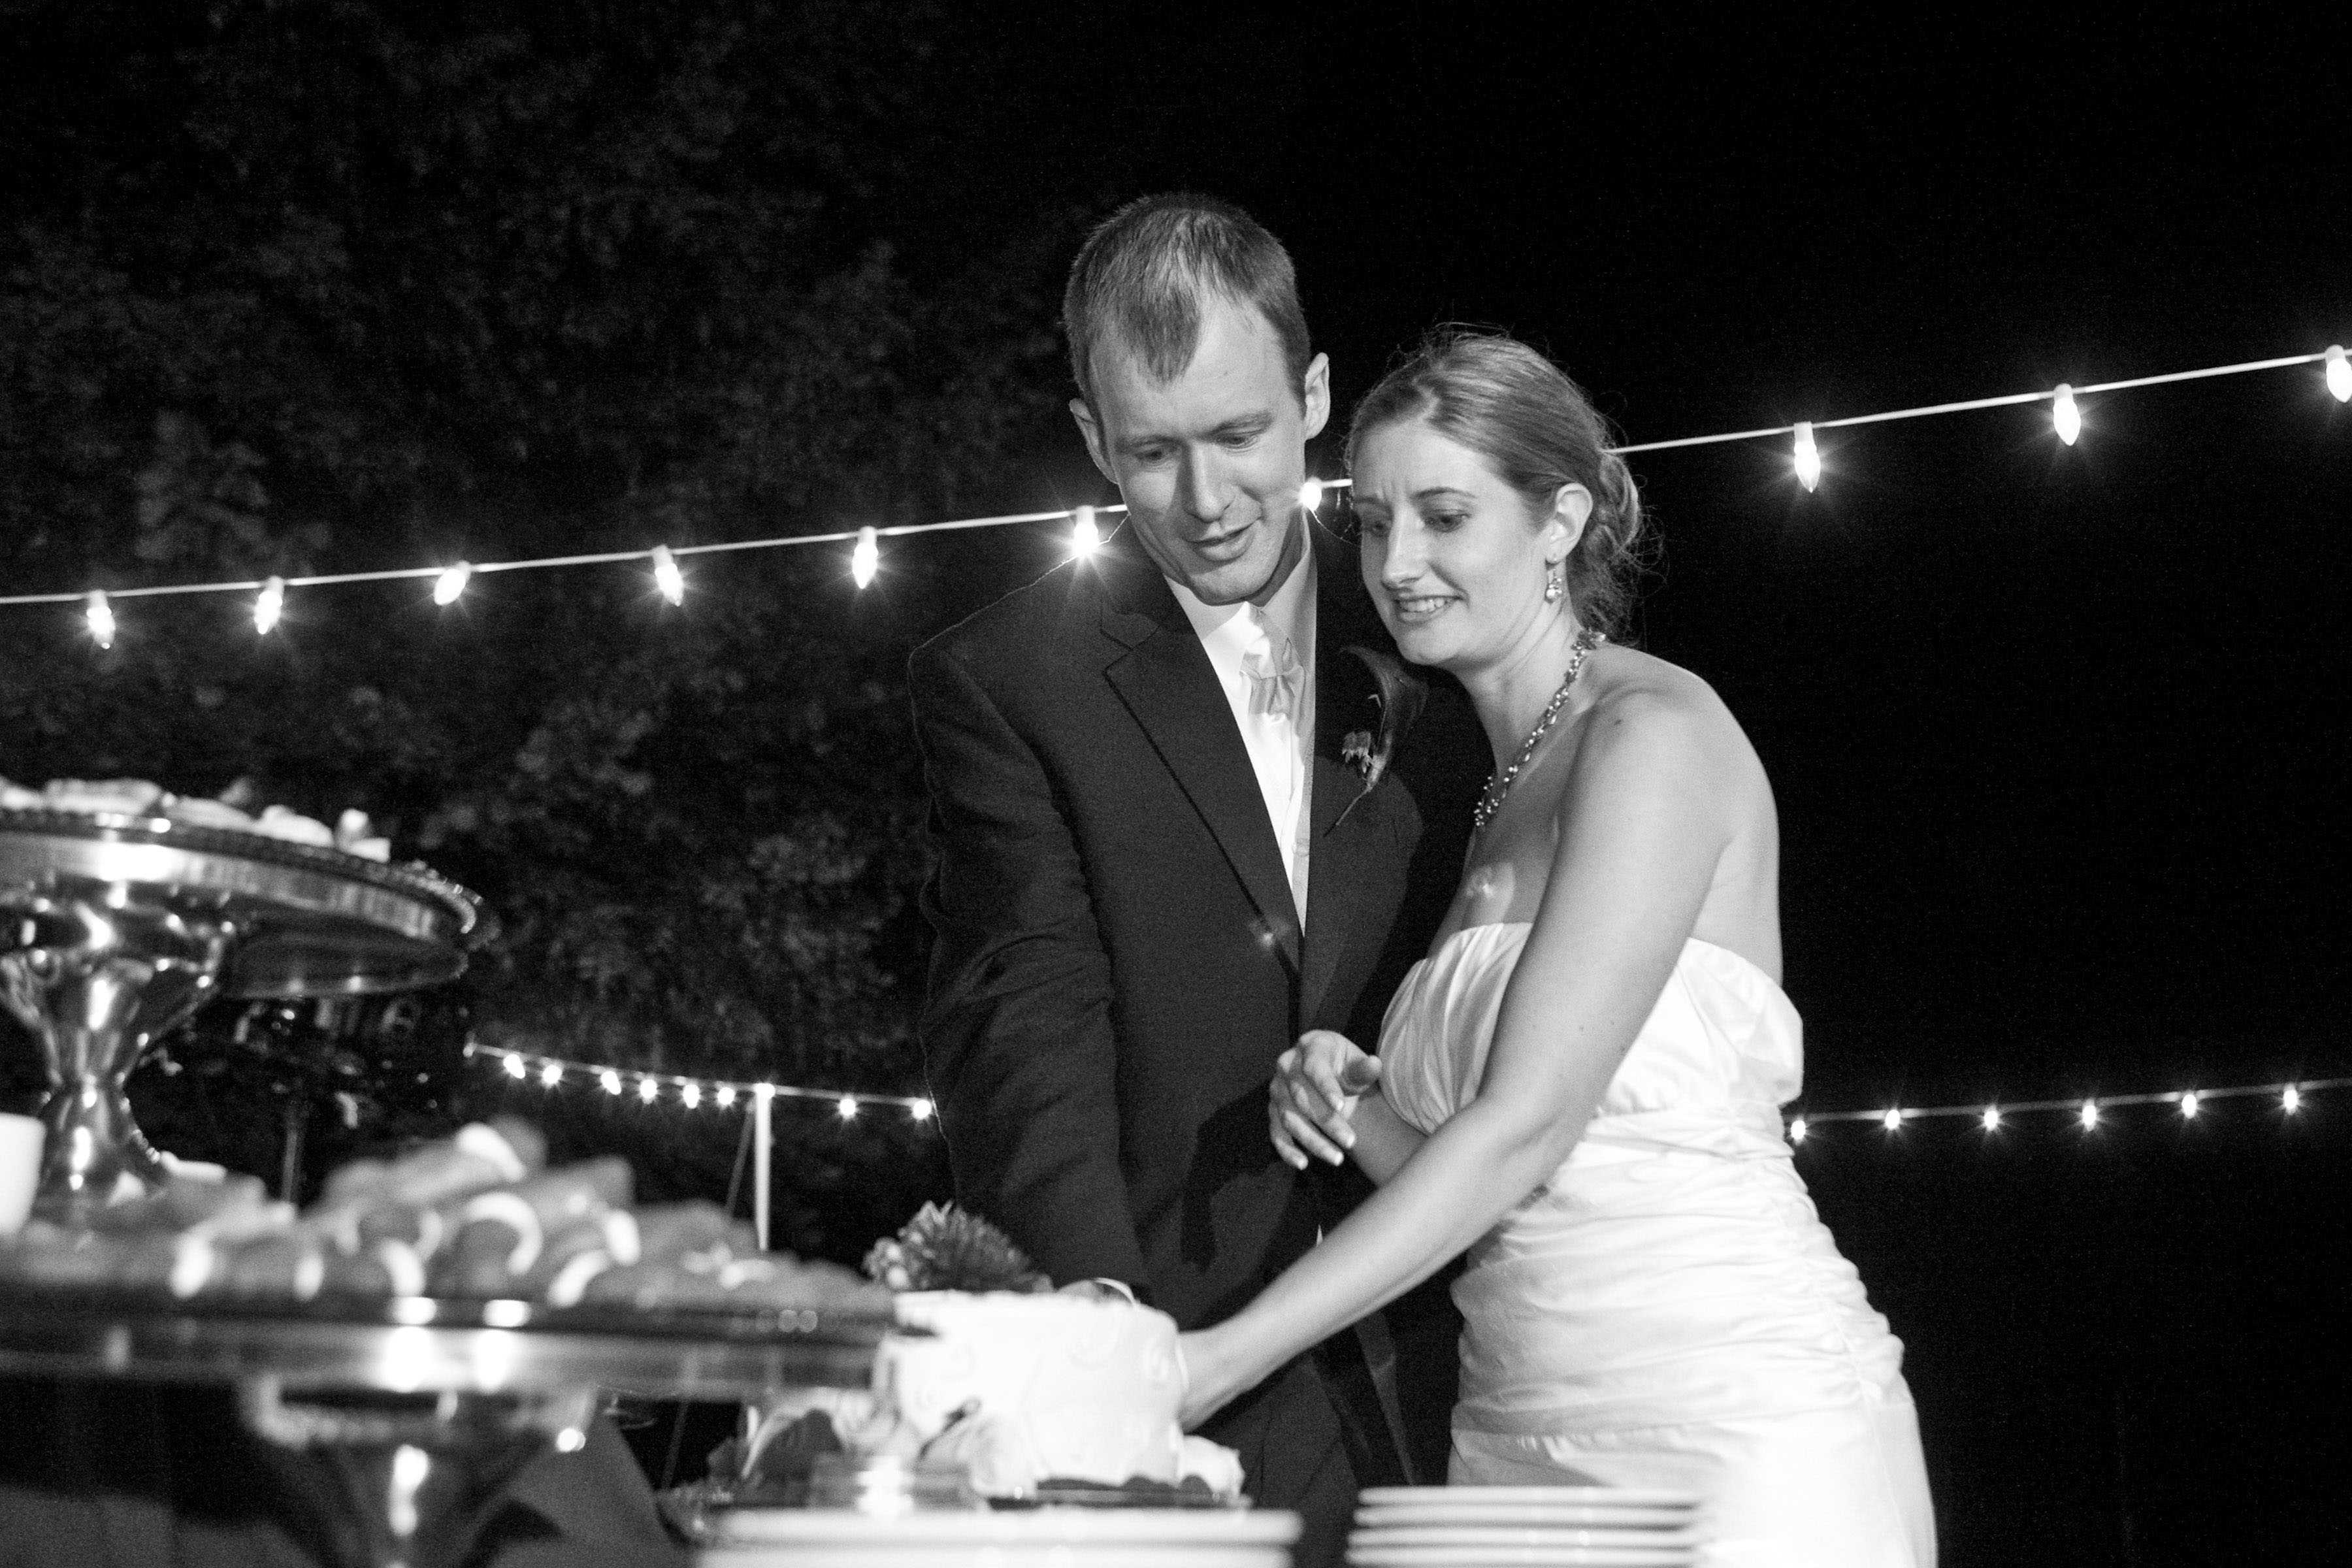 portland-wedding-cake-cutting